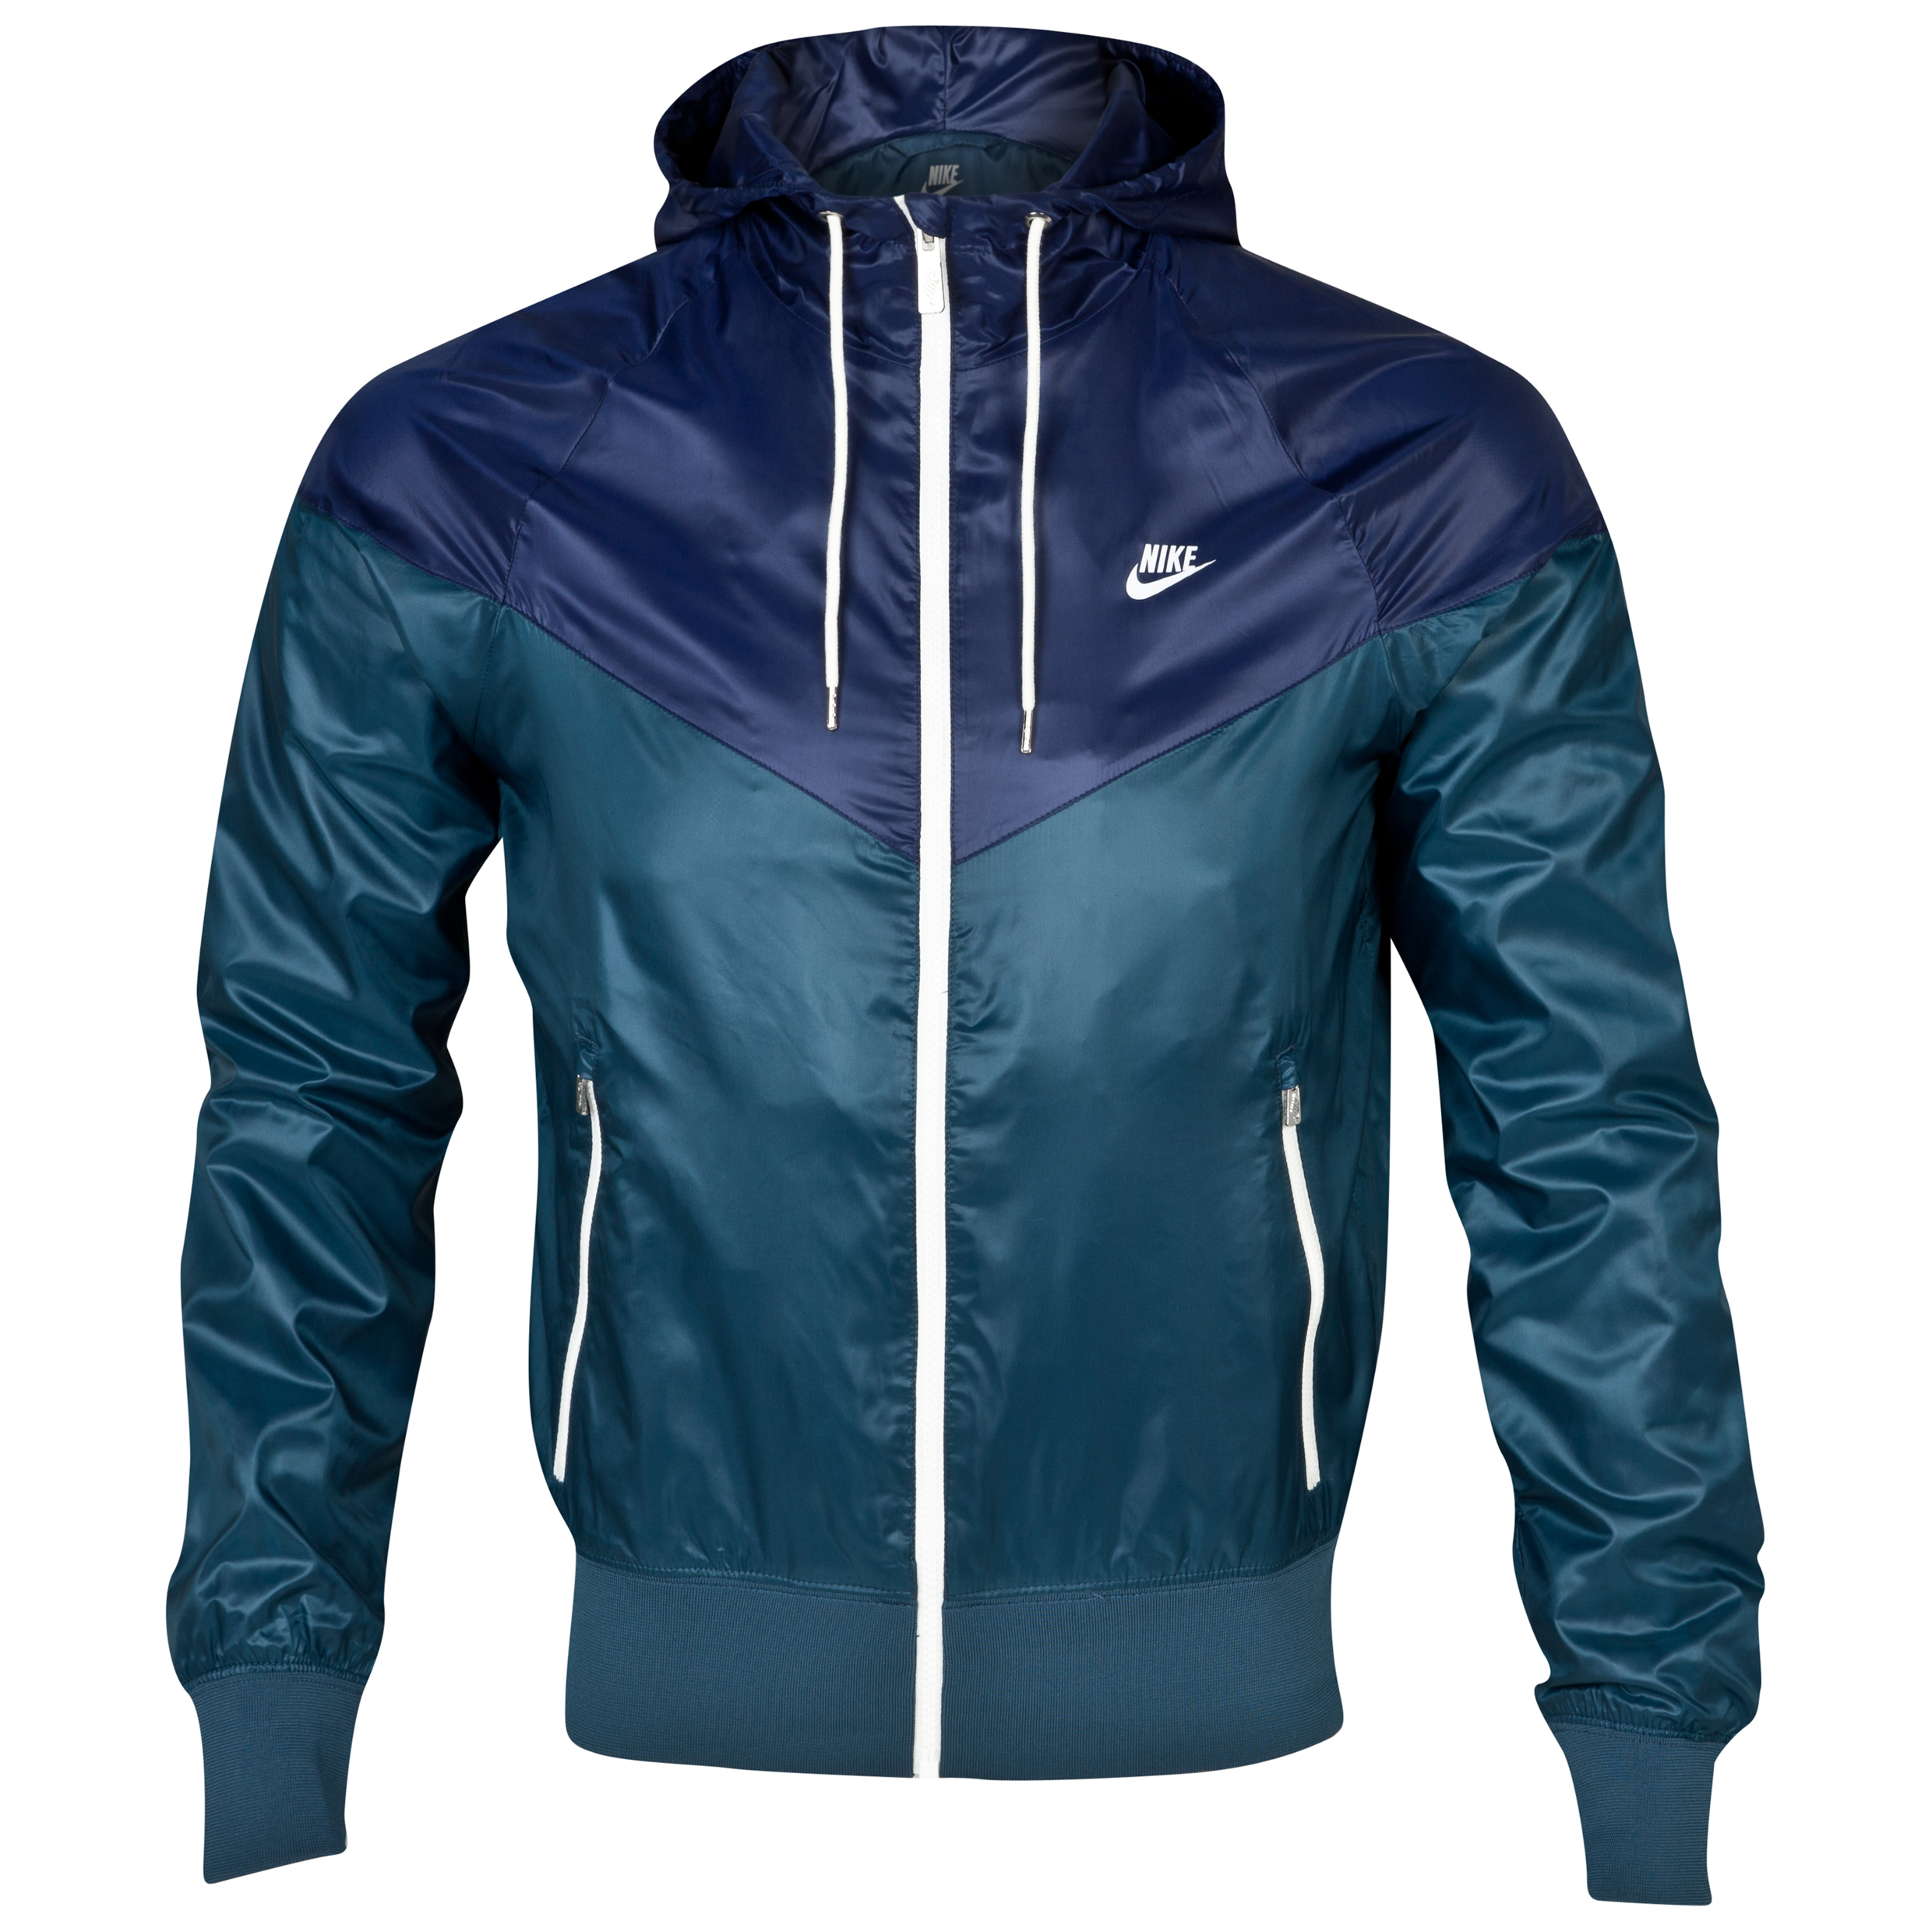 Nike Windrunner Jacket - Squadran Blue/Blackened Blue